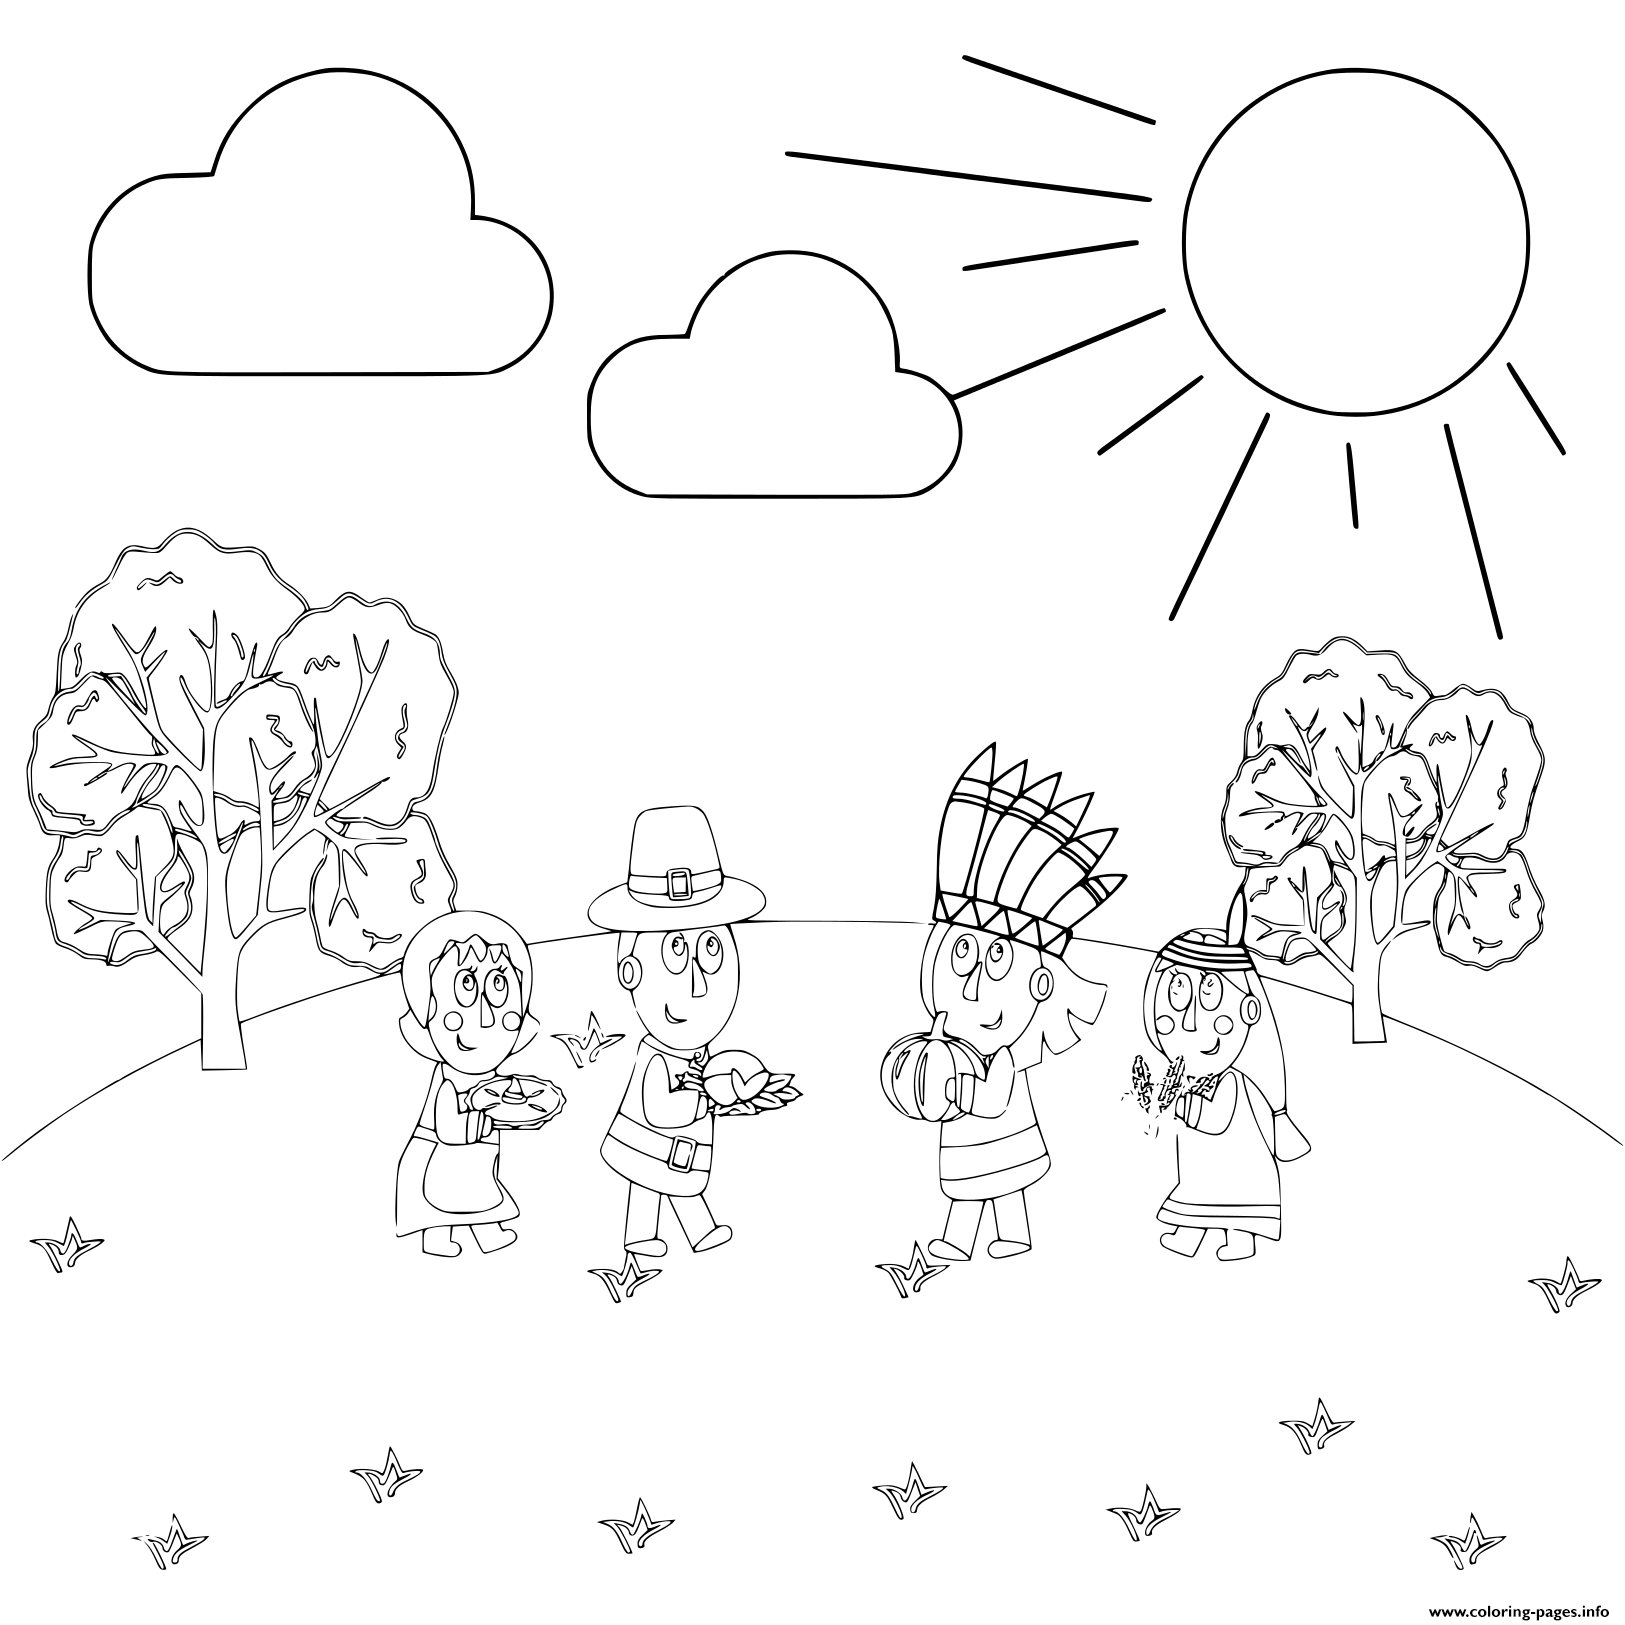 happy friendship day coloring pages thanksgiving day make new friends coloring pages printable friendship day pages happy coloring